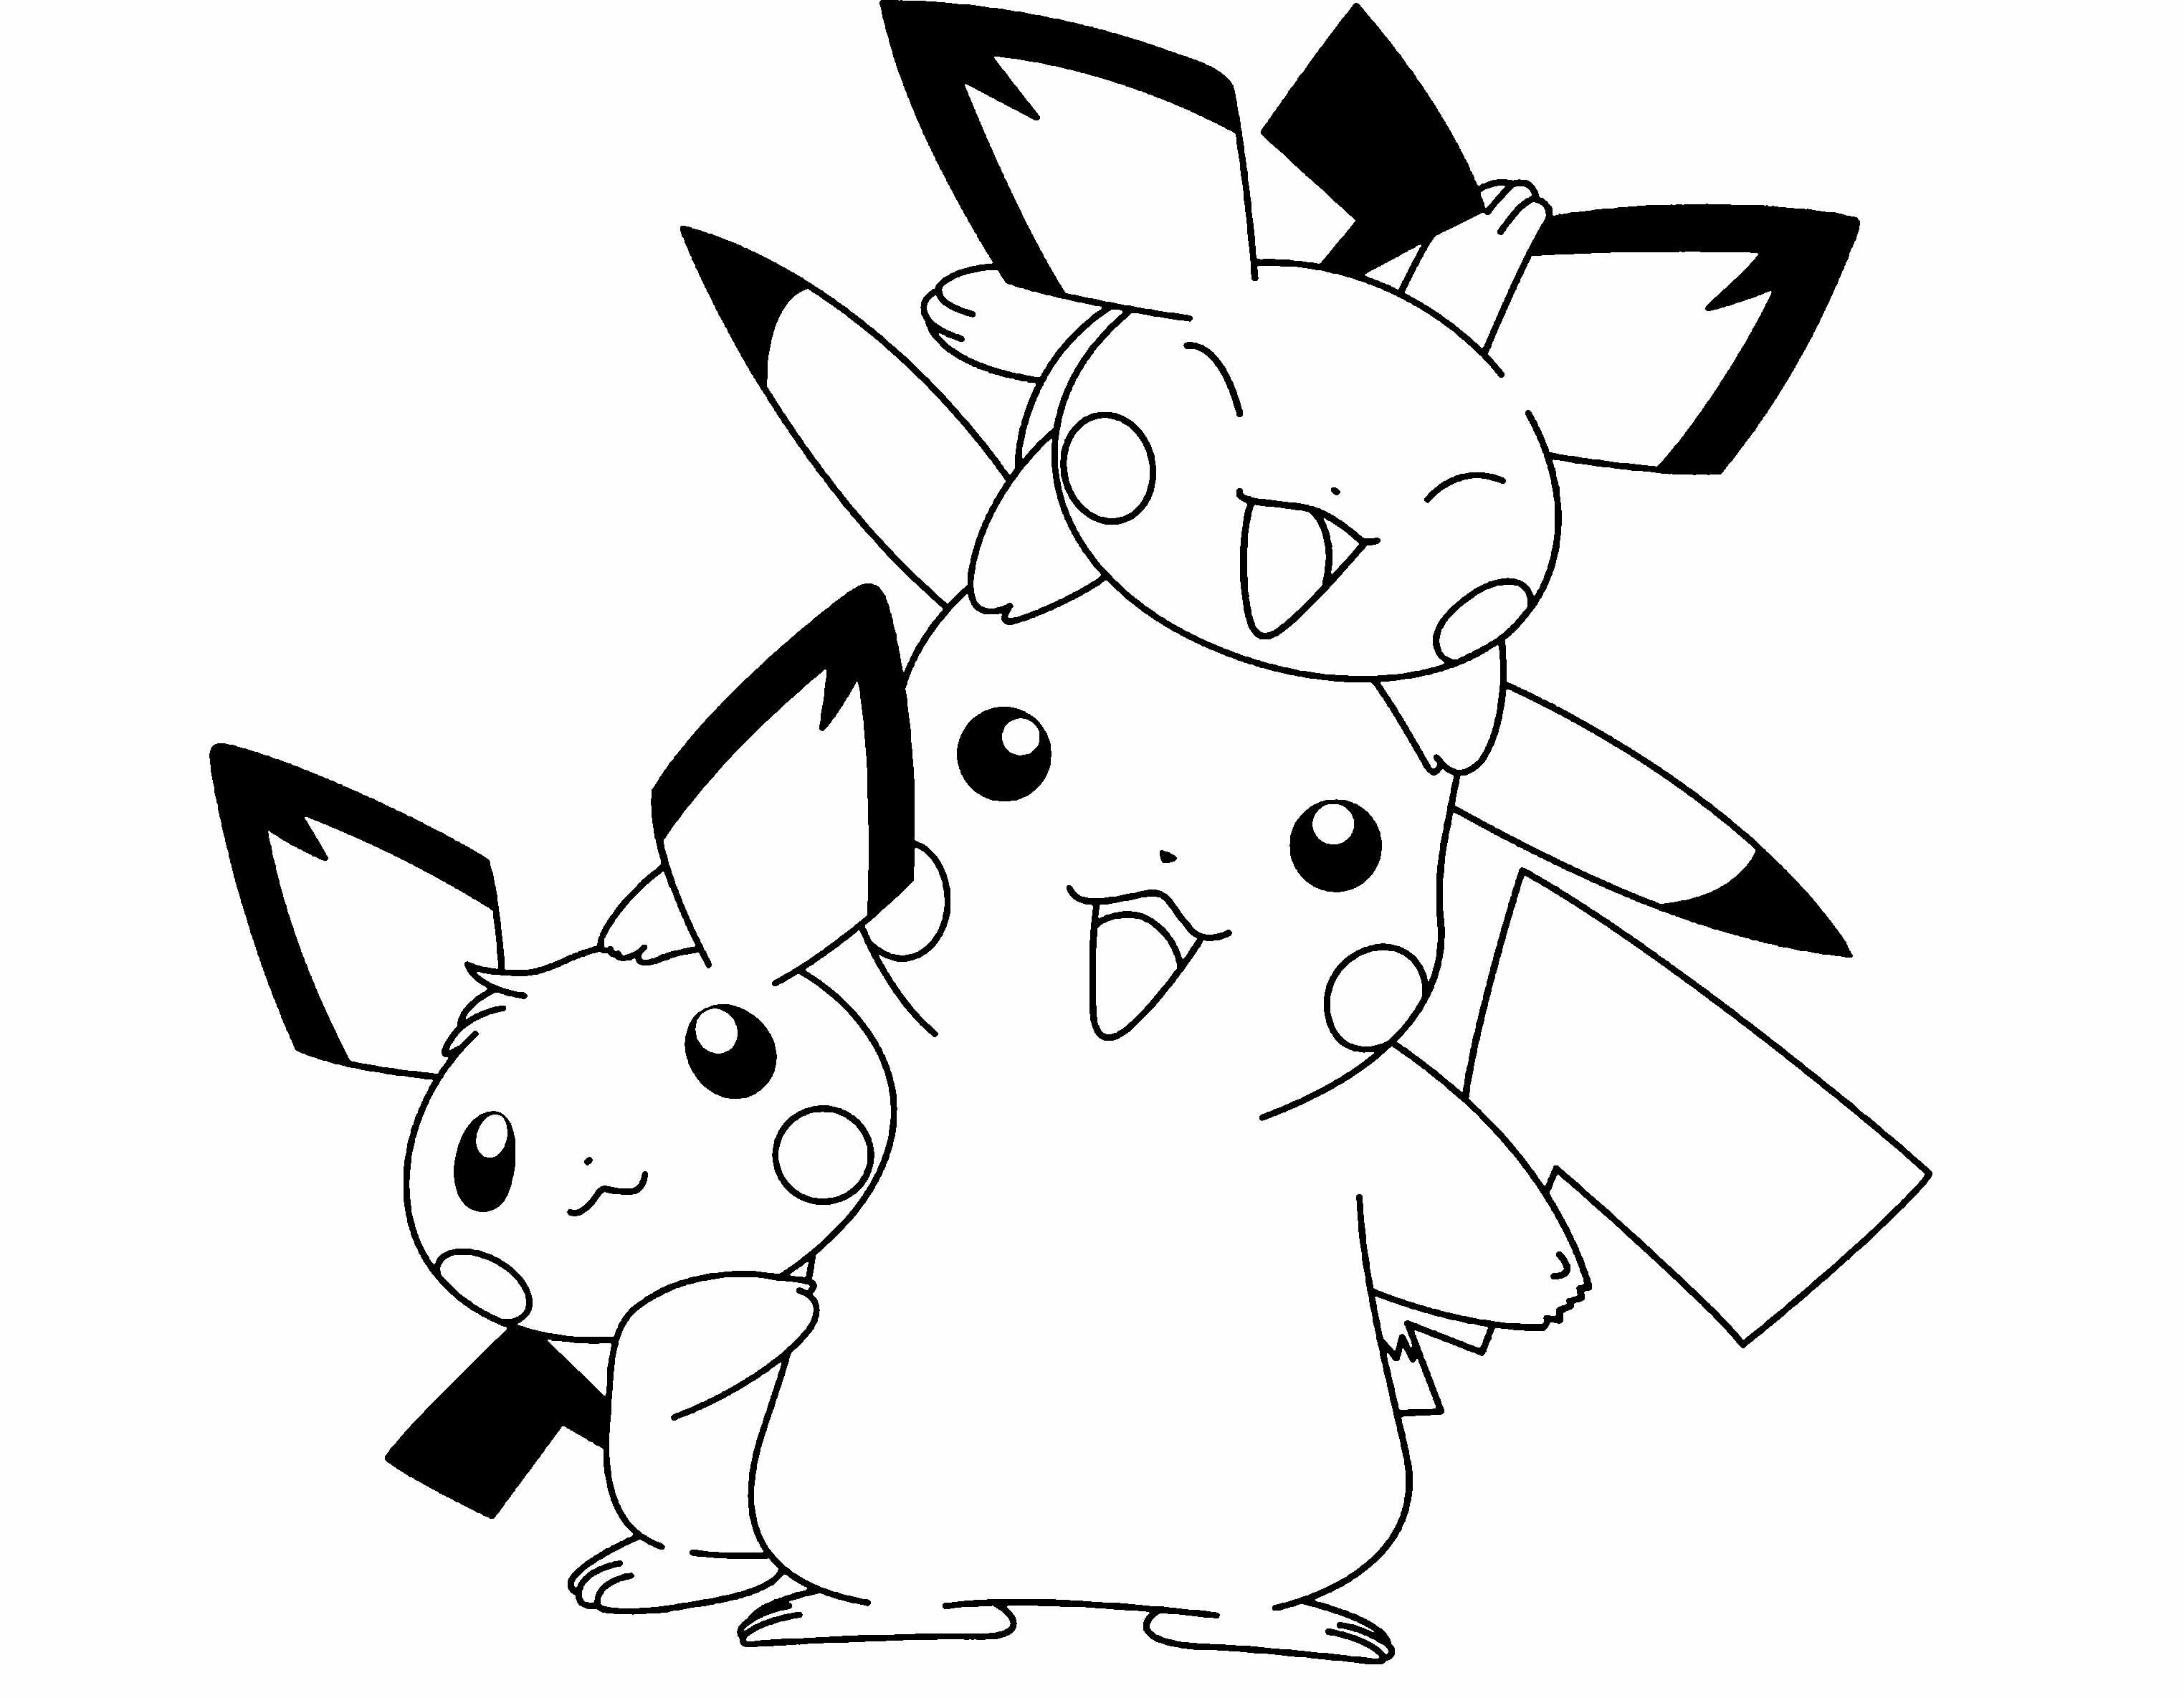 Pokemon Pikachu And Two Friends Are Cute Coloring Page | Pikachu ...